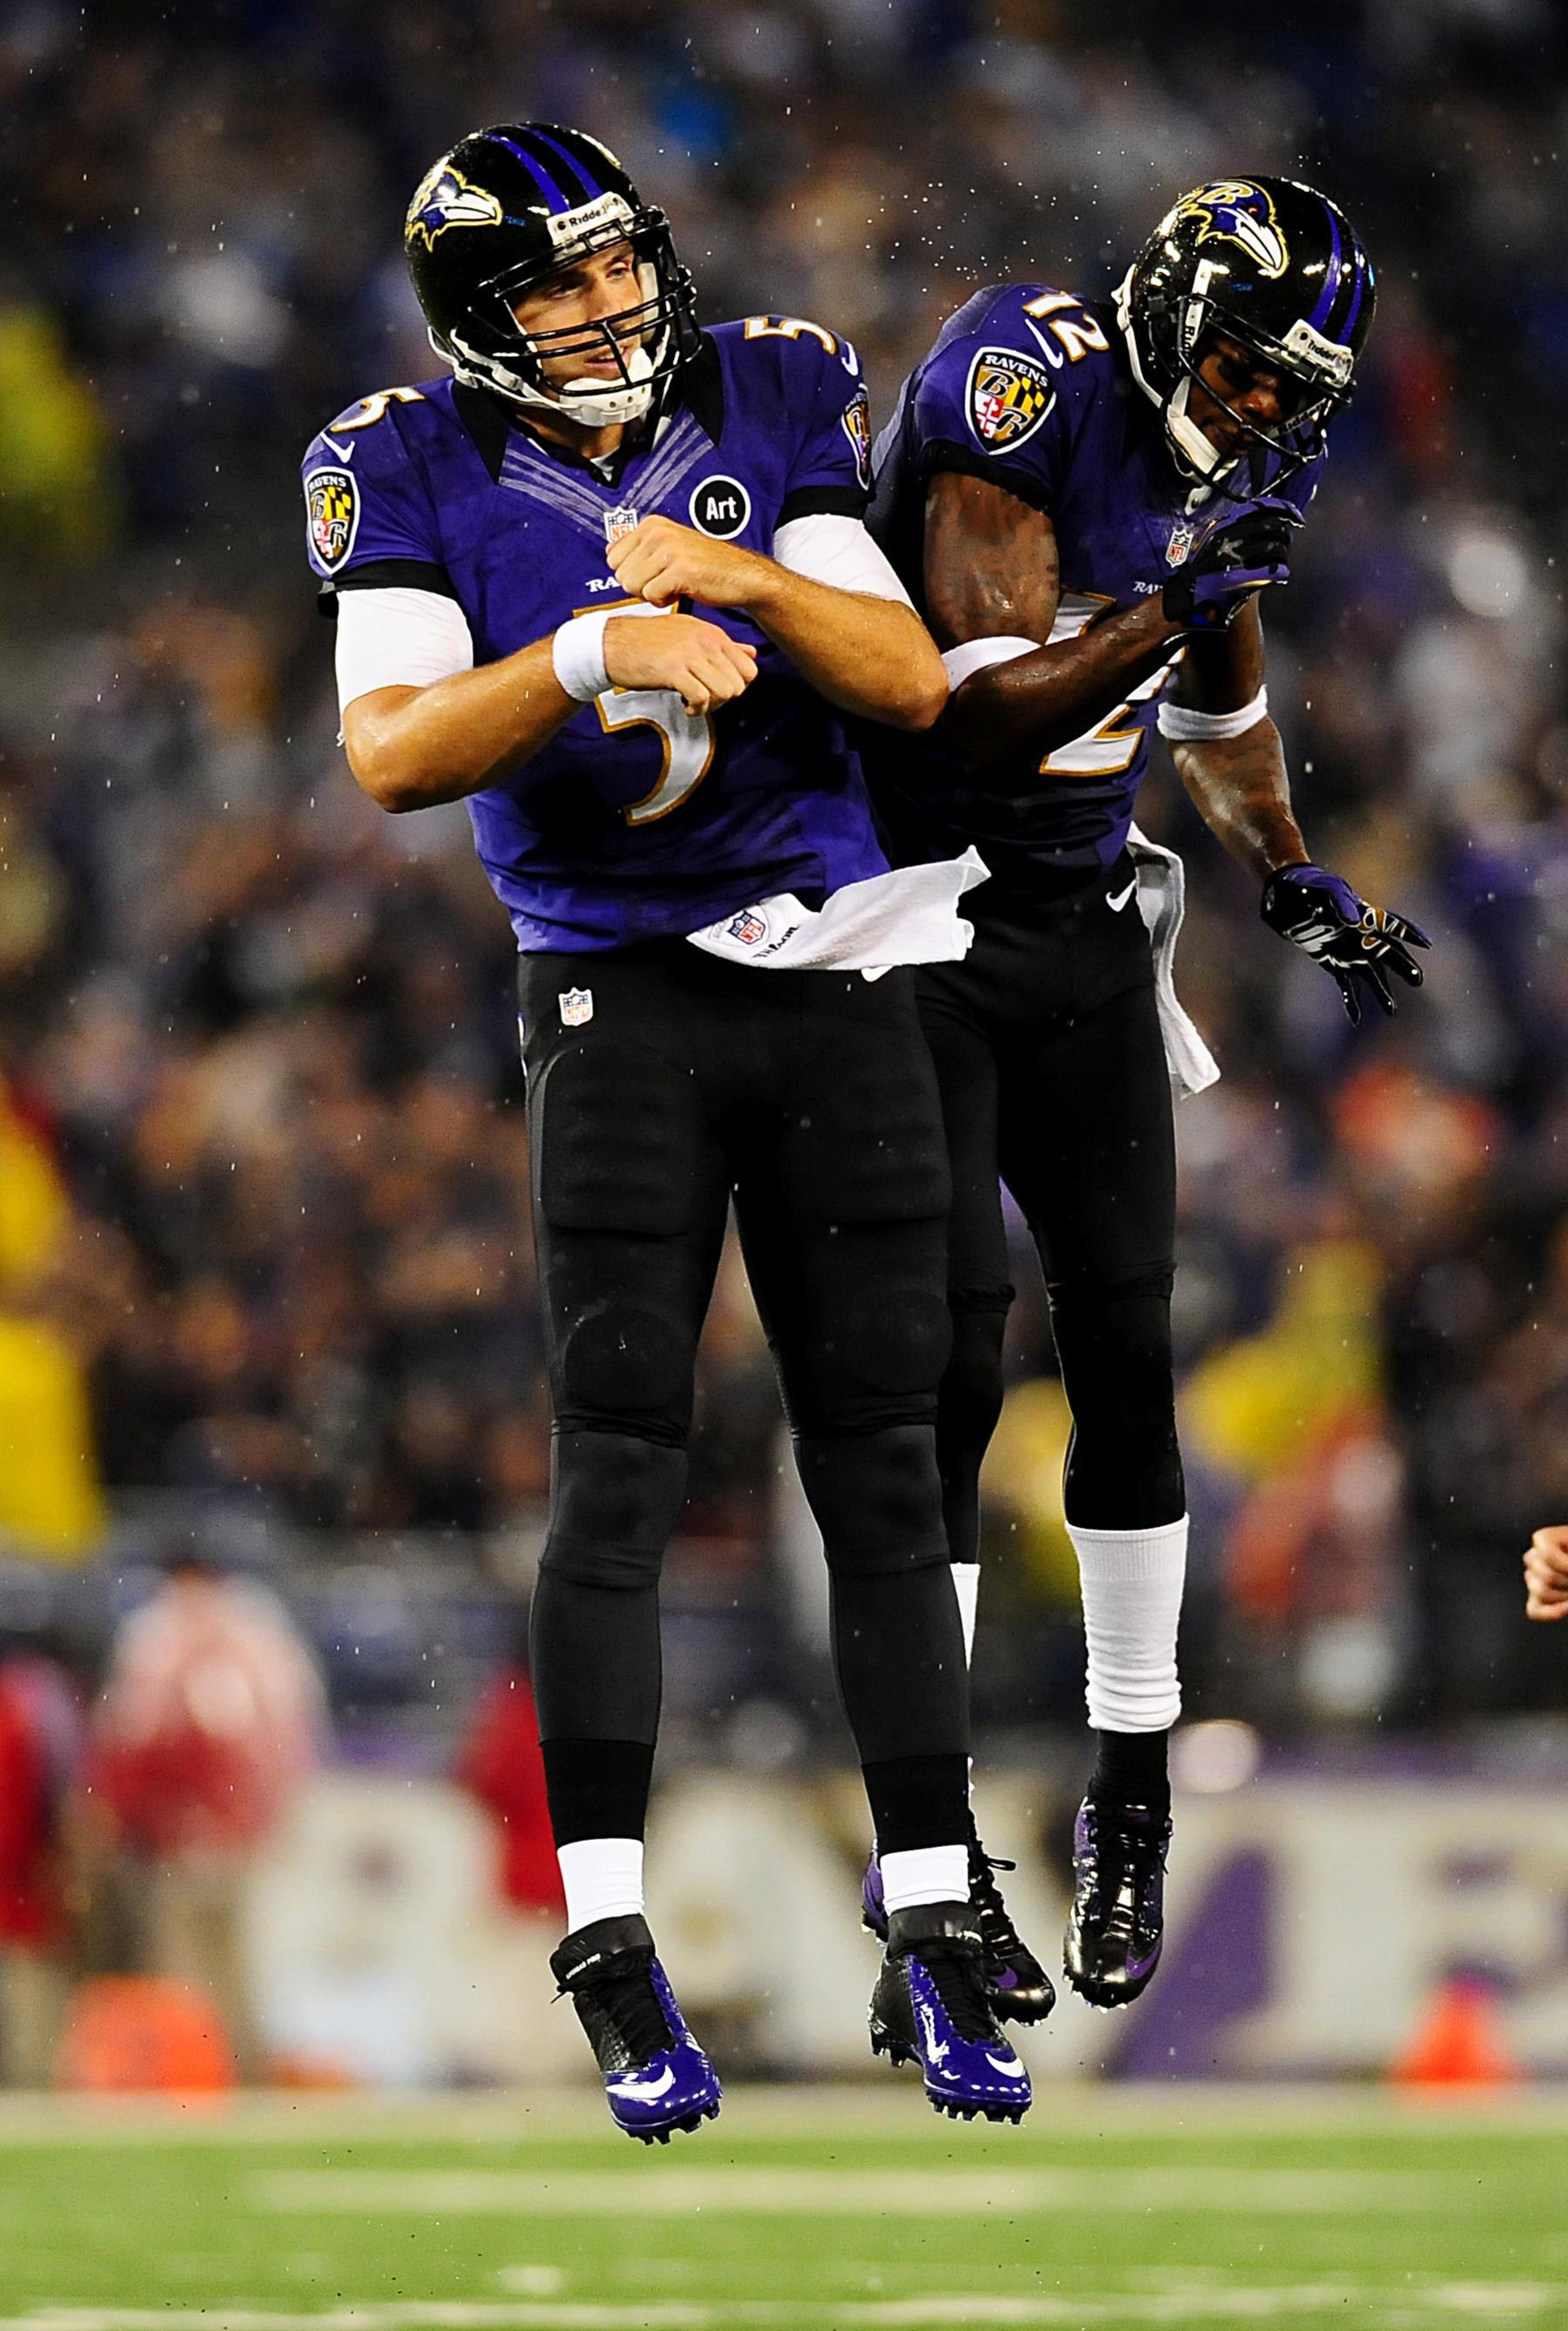 I don't recall seeing a similar shot of Jakespeare and Schaub in Houston.